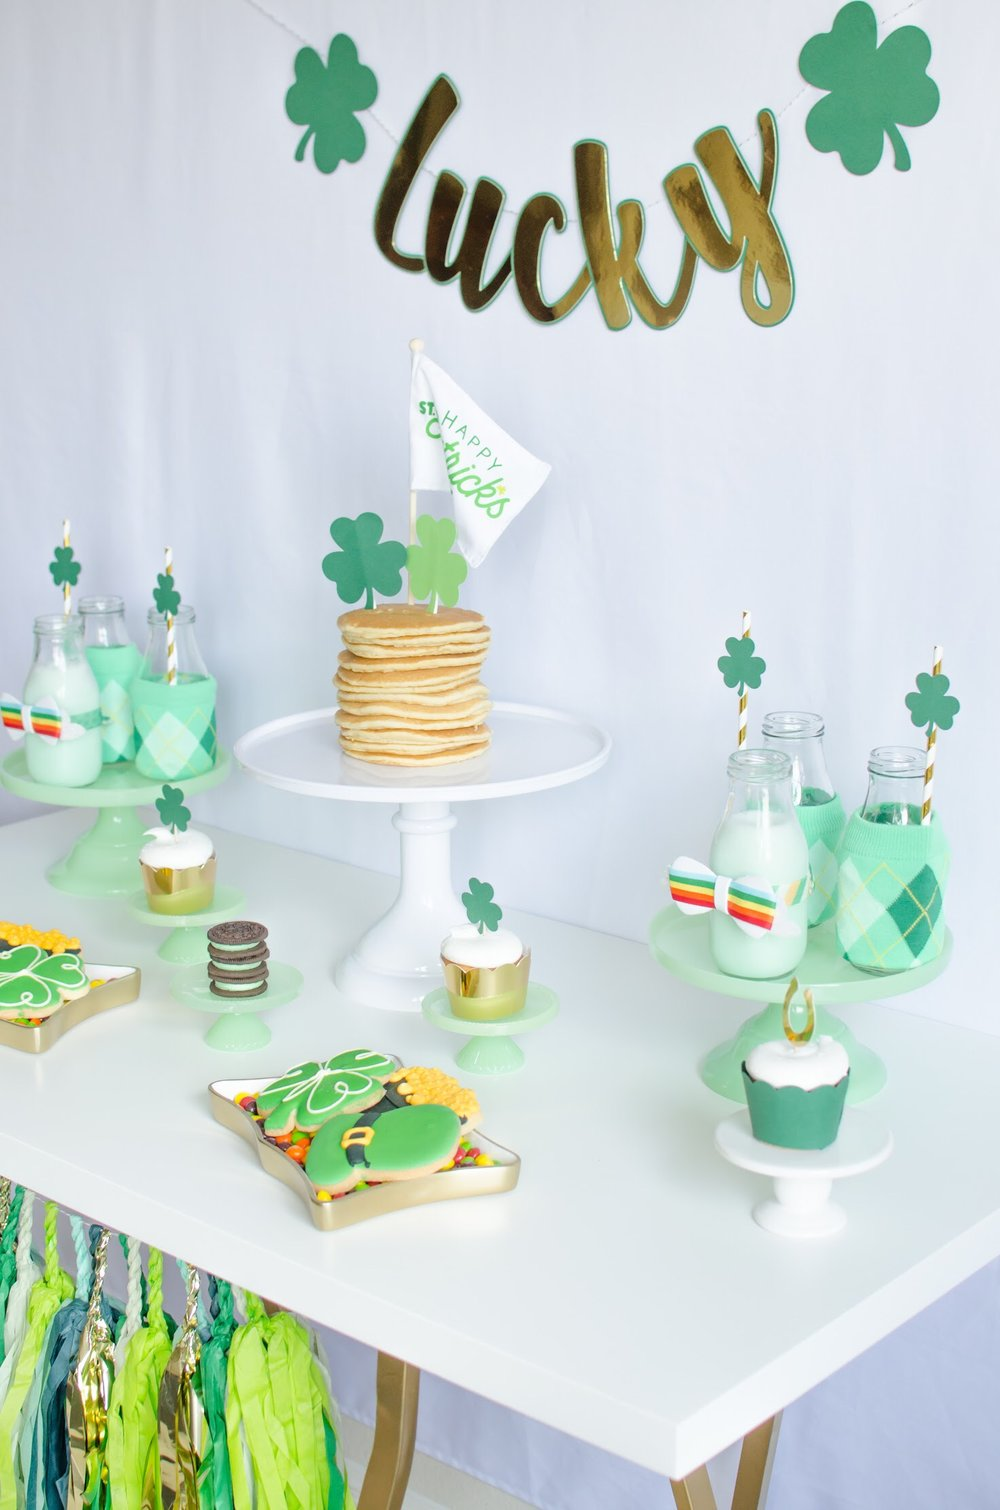 Love all the shades of green and gold in this St. Patrick's Day breakfast party from Mint Event Design www.minteventdesign.com #partyideas #partydecorations #saintpatricksday #stpatricksday #tablescape #desserttable